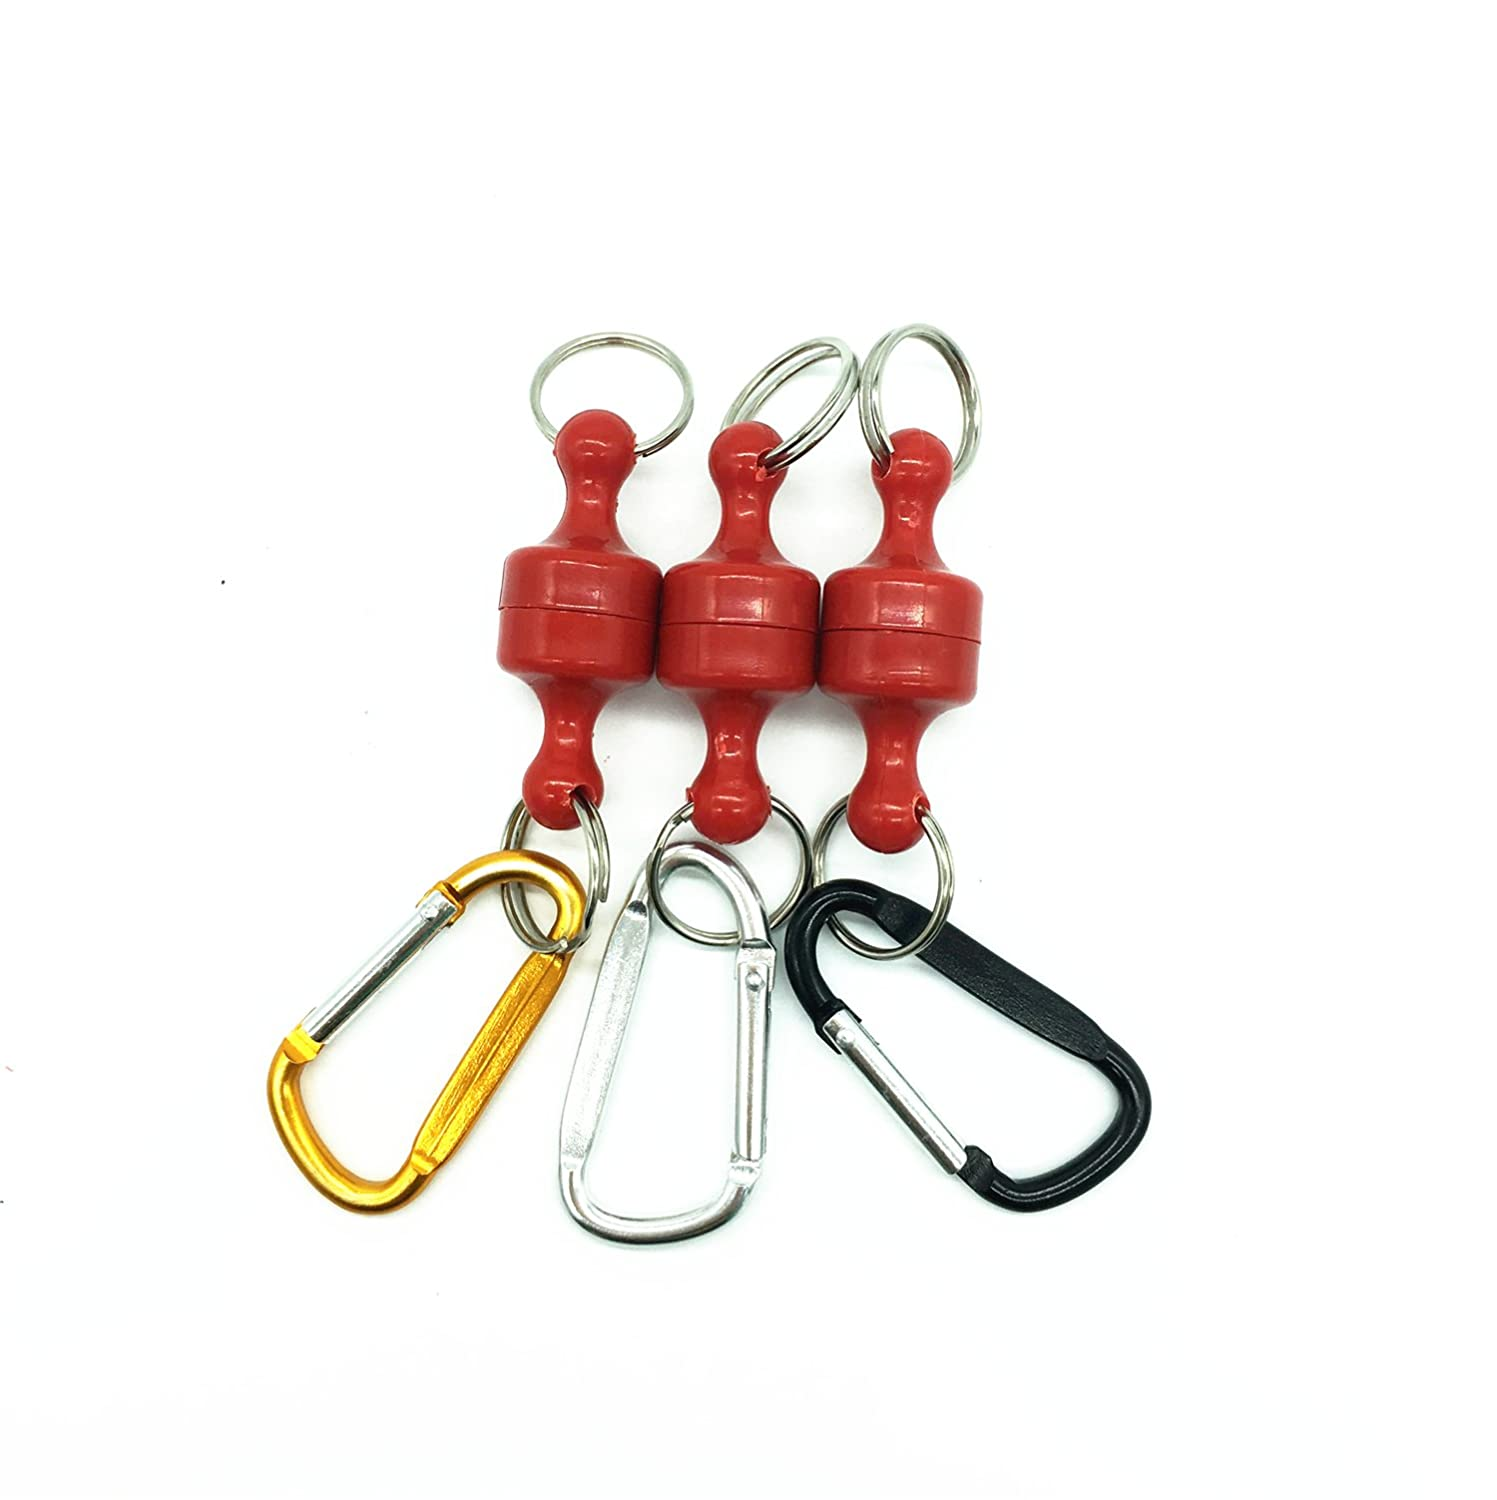 Inf-way 3pcs Super Strong Magnet Split Rings Keychain Hook Hangers Magnetic Net Release Holder / Locking Climbing Carabiners / Refrigerator Magnets